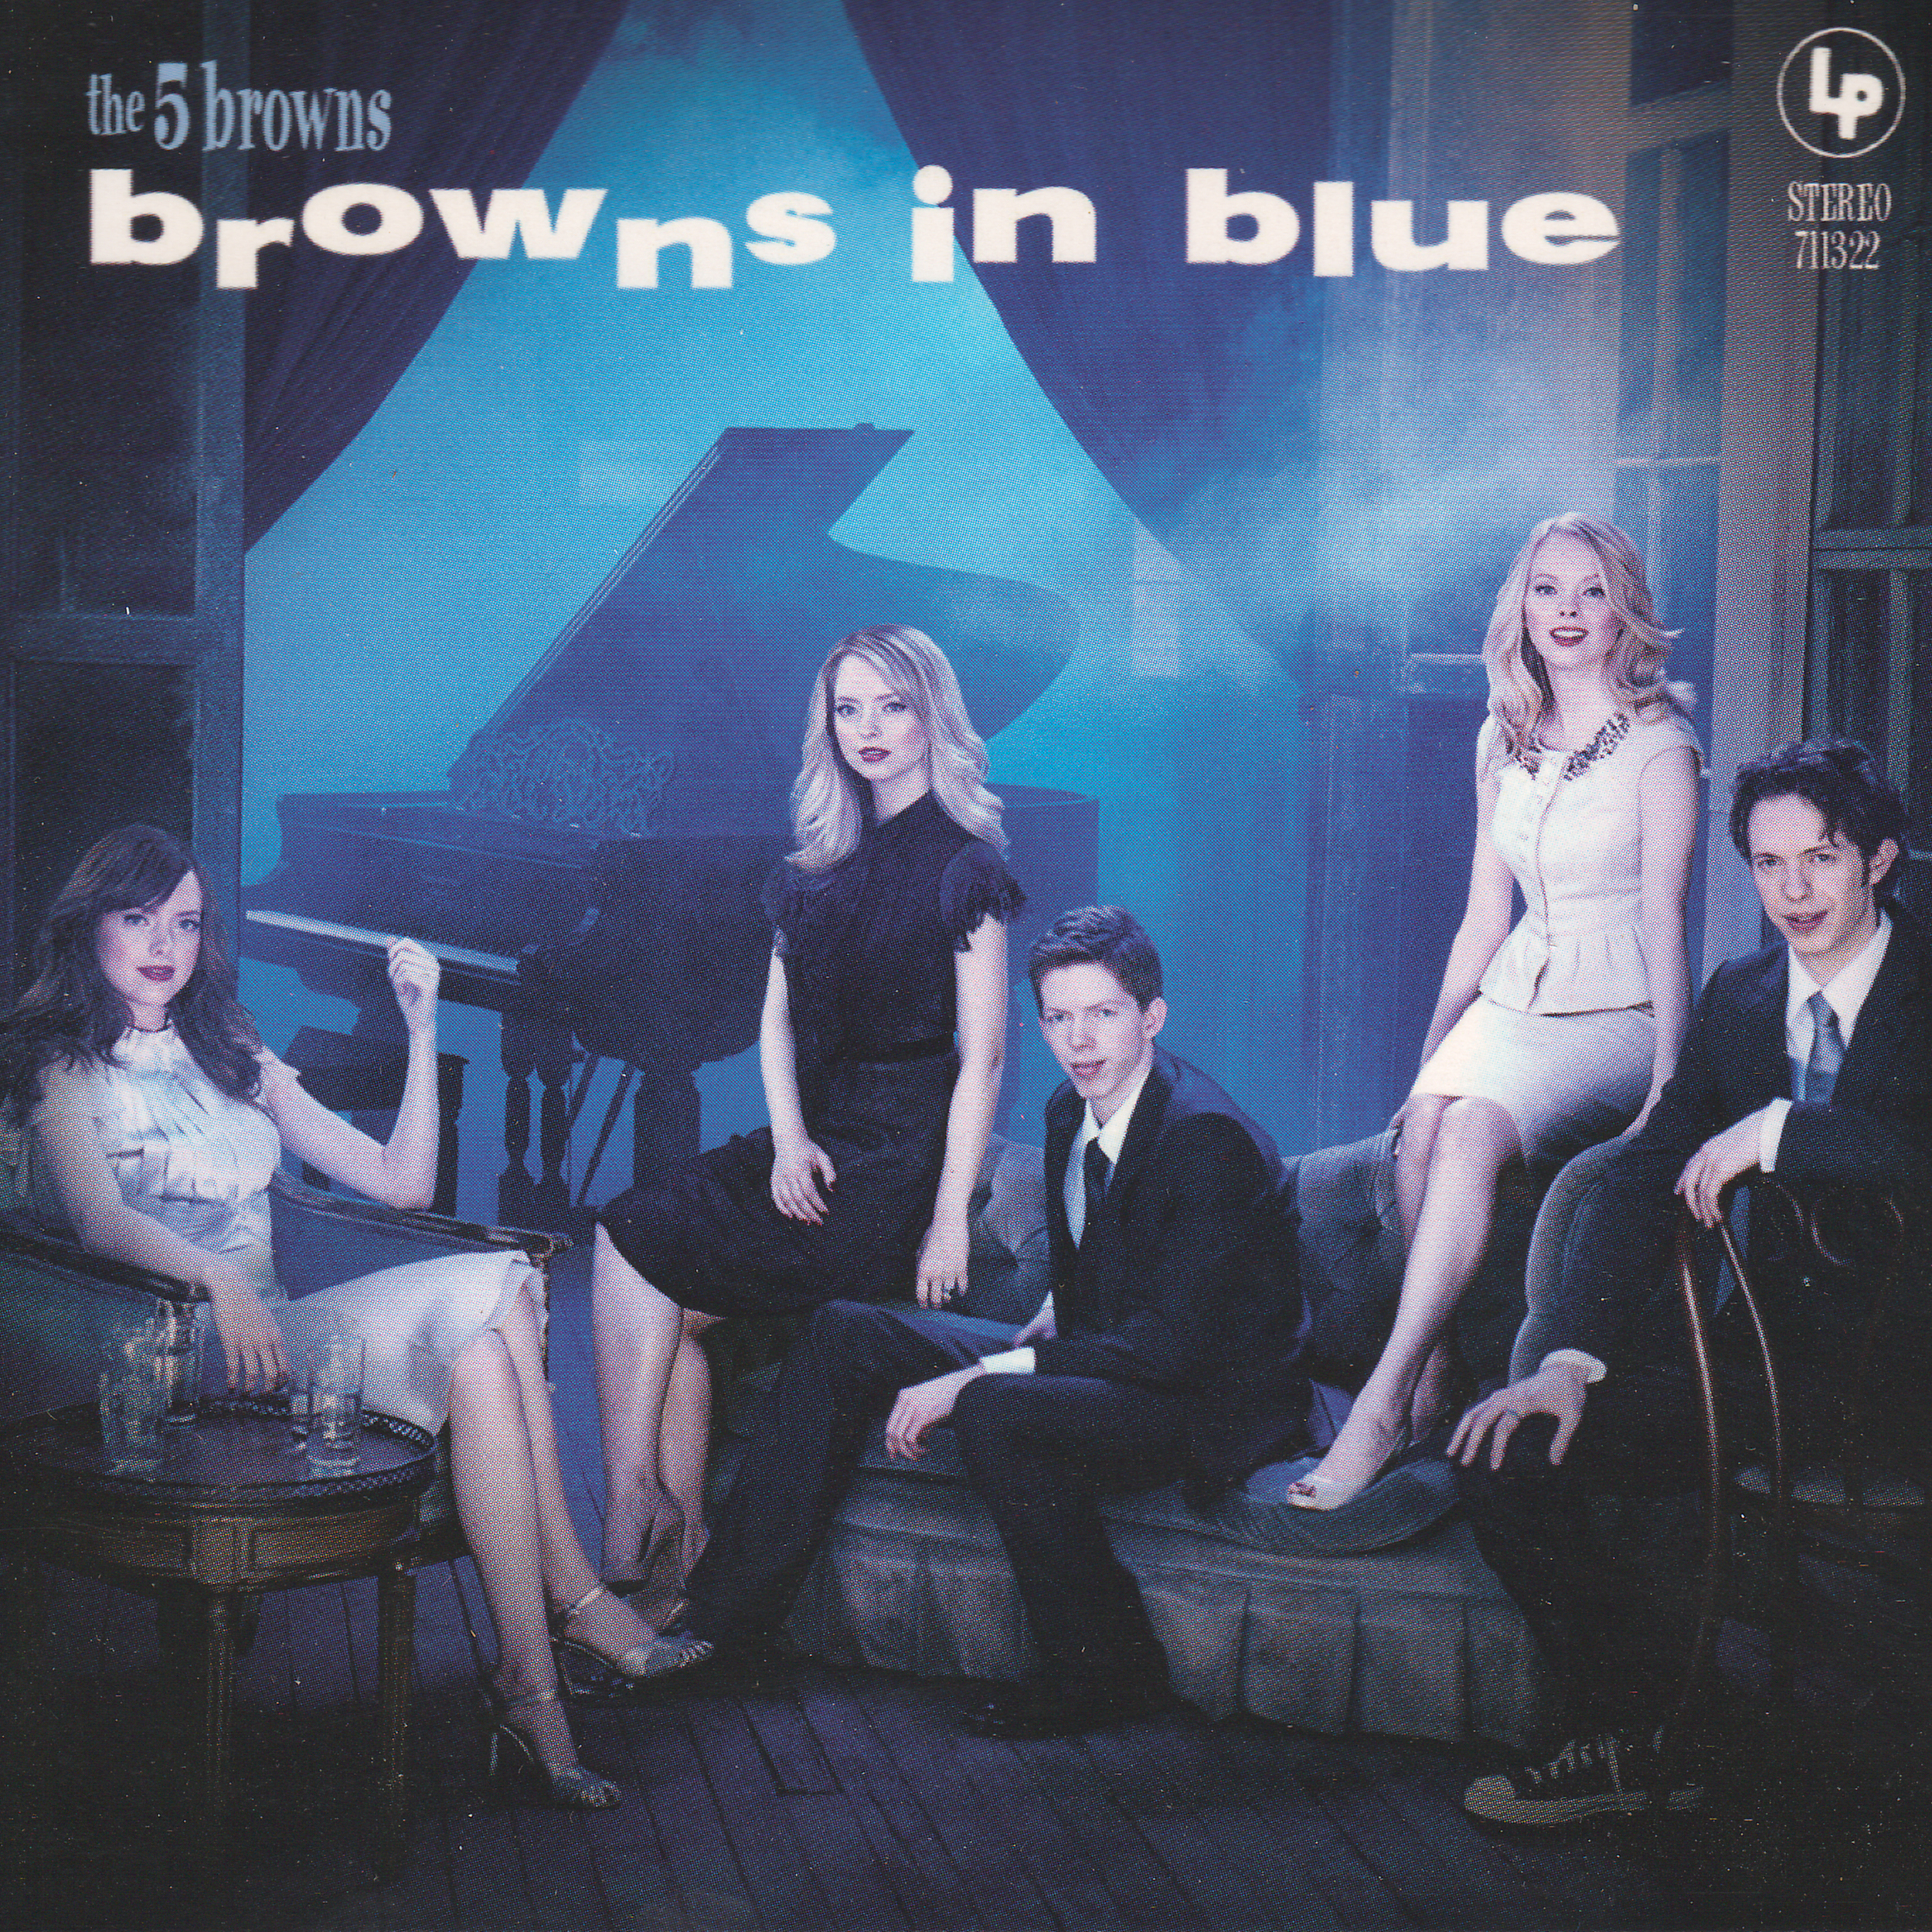 5 browns in blue.jpg